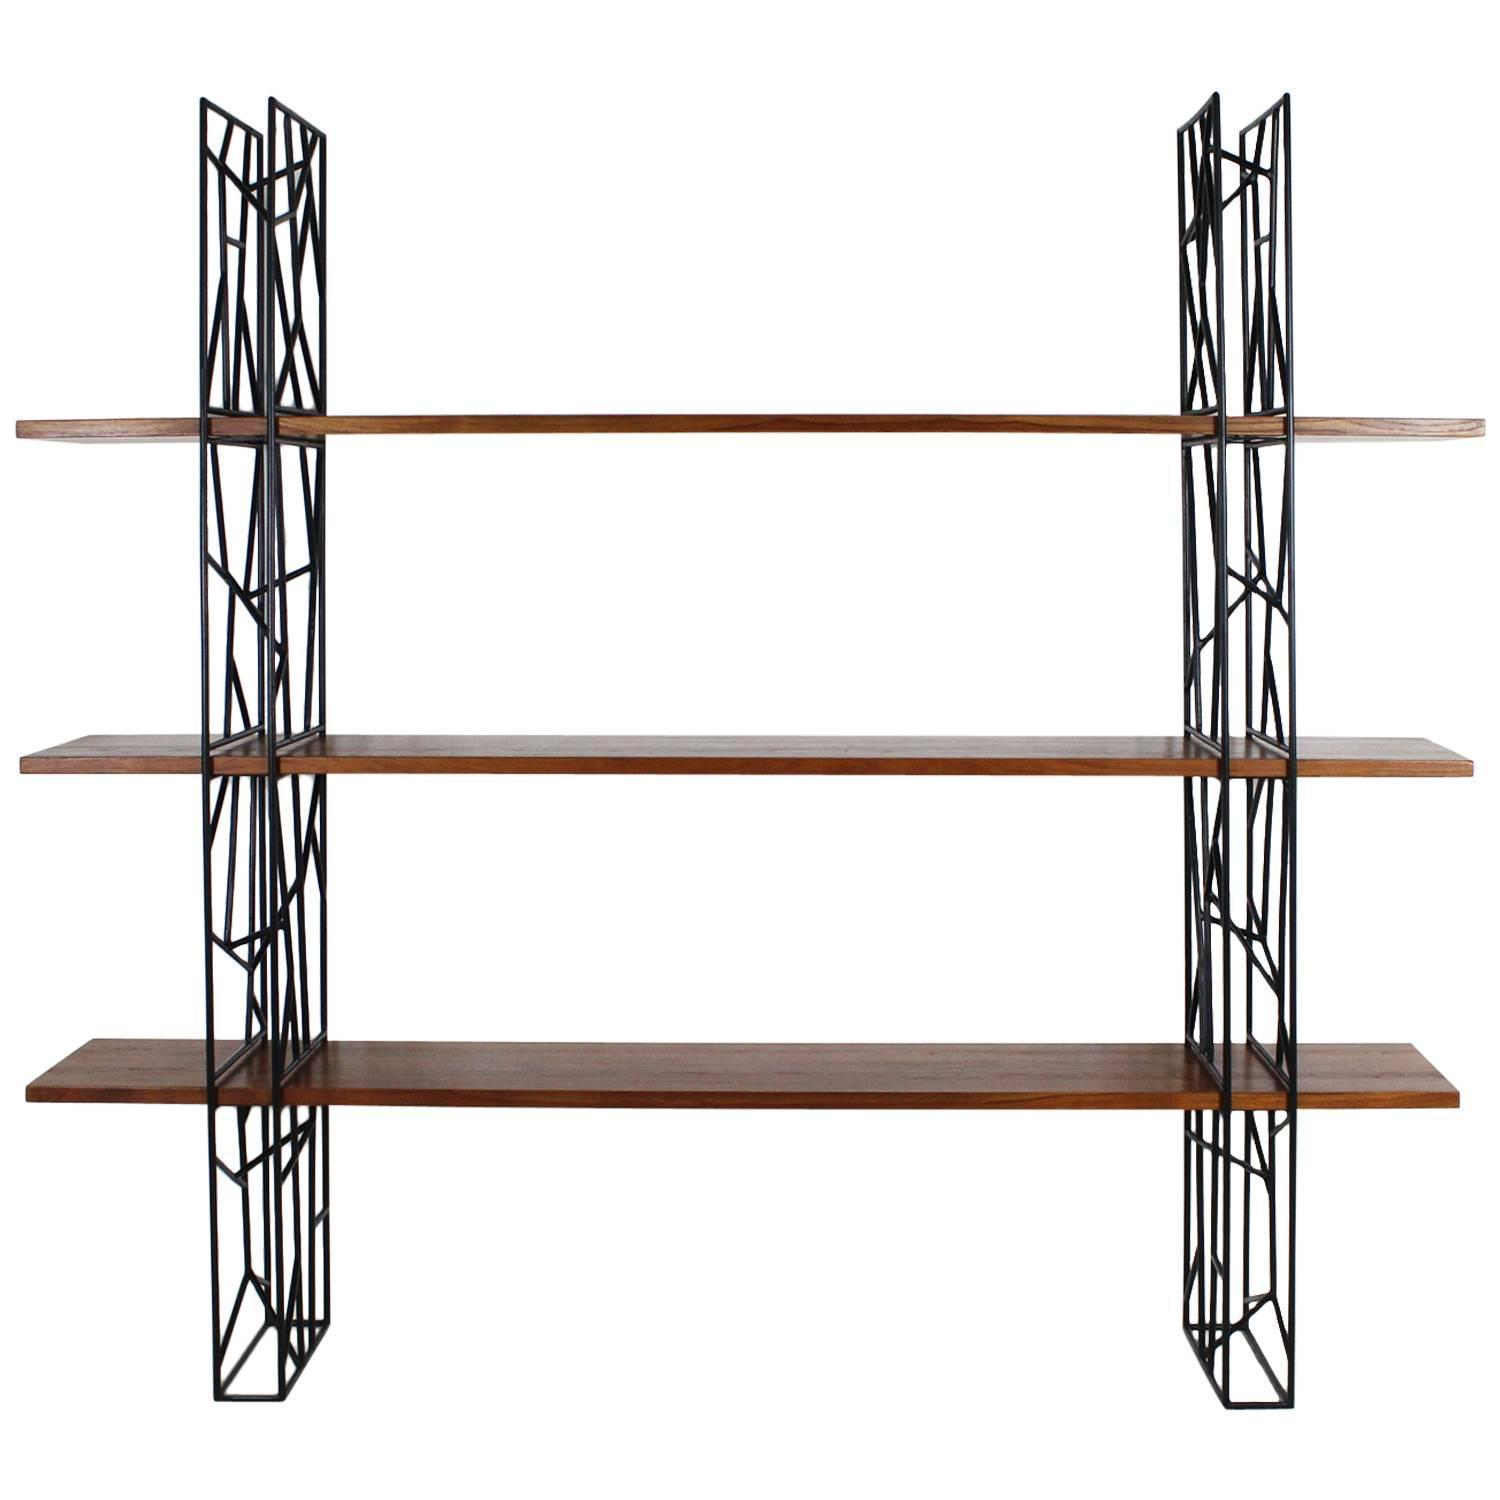 Wonderful image of Bookshelf with Black Metal Frame and Wood Shelves 1980 at 1stdibs with #6C3C24 color and 1500x1500 pixels